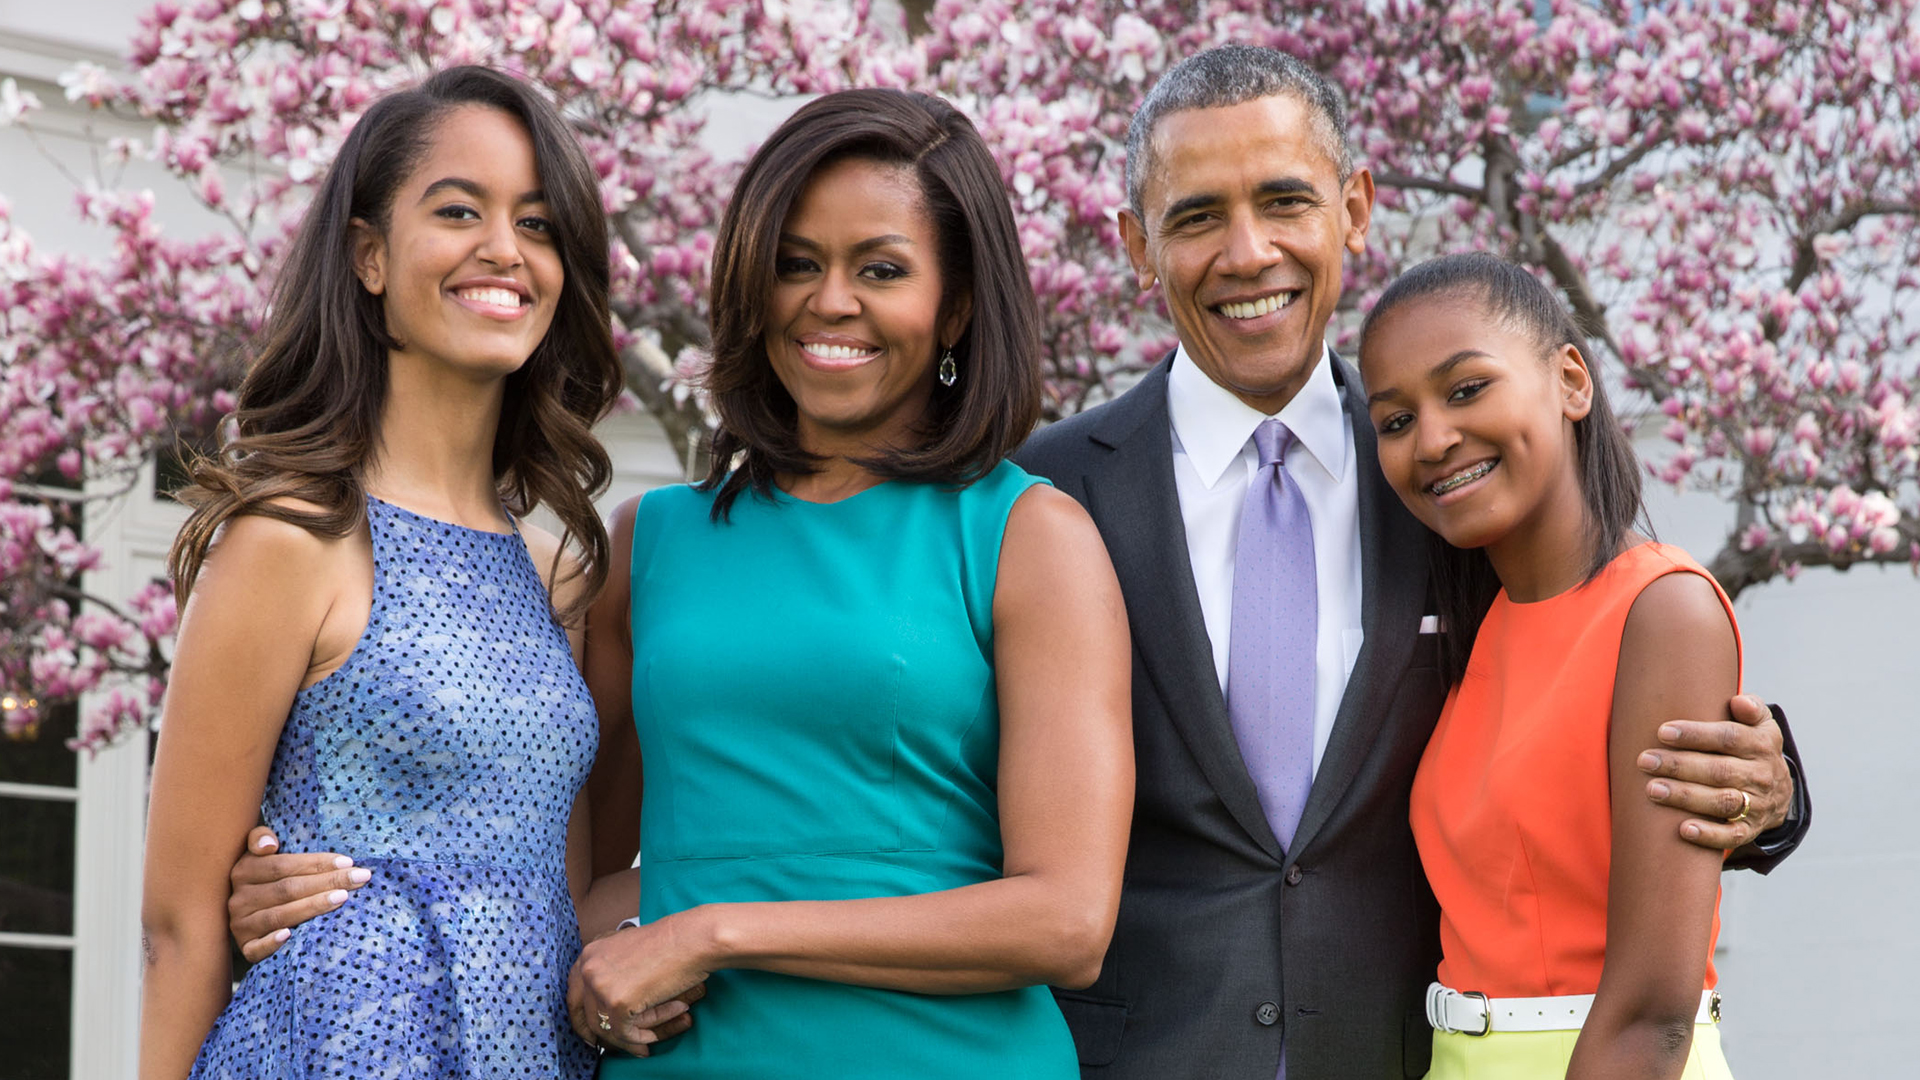 Family photo of the politician, married to Michelle Obama, famous for President of the United States of America.